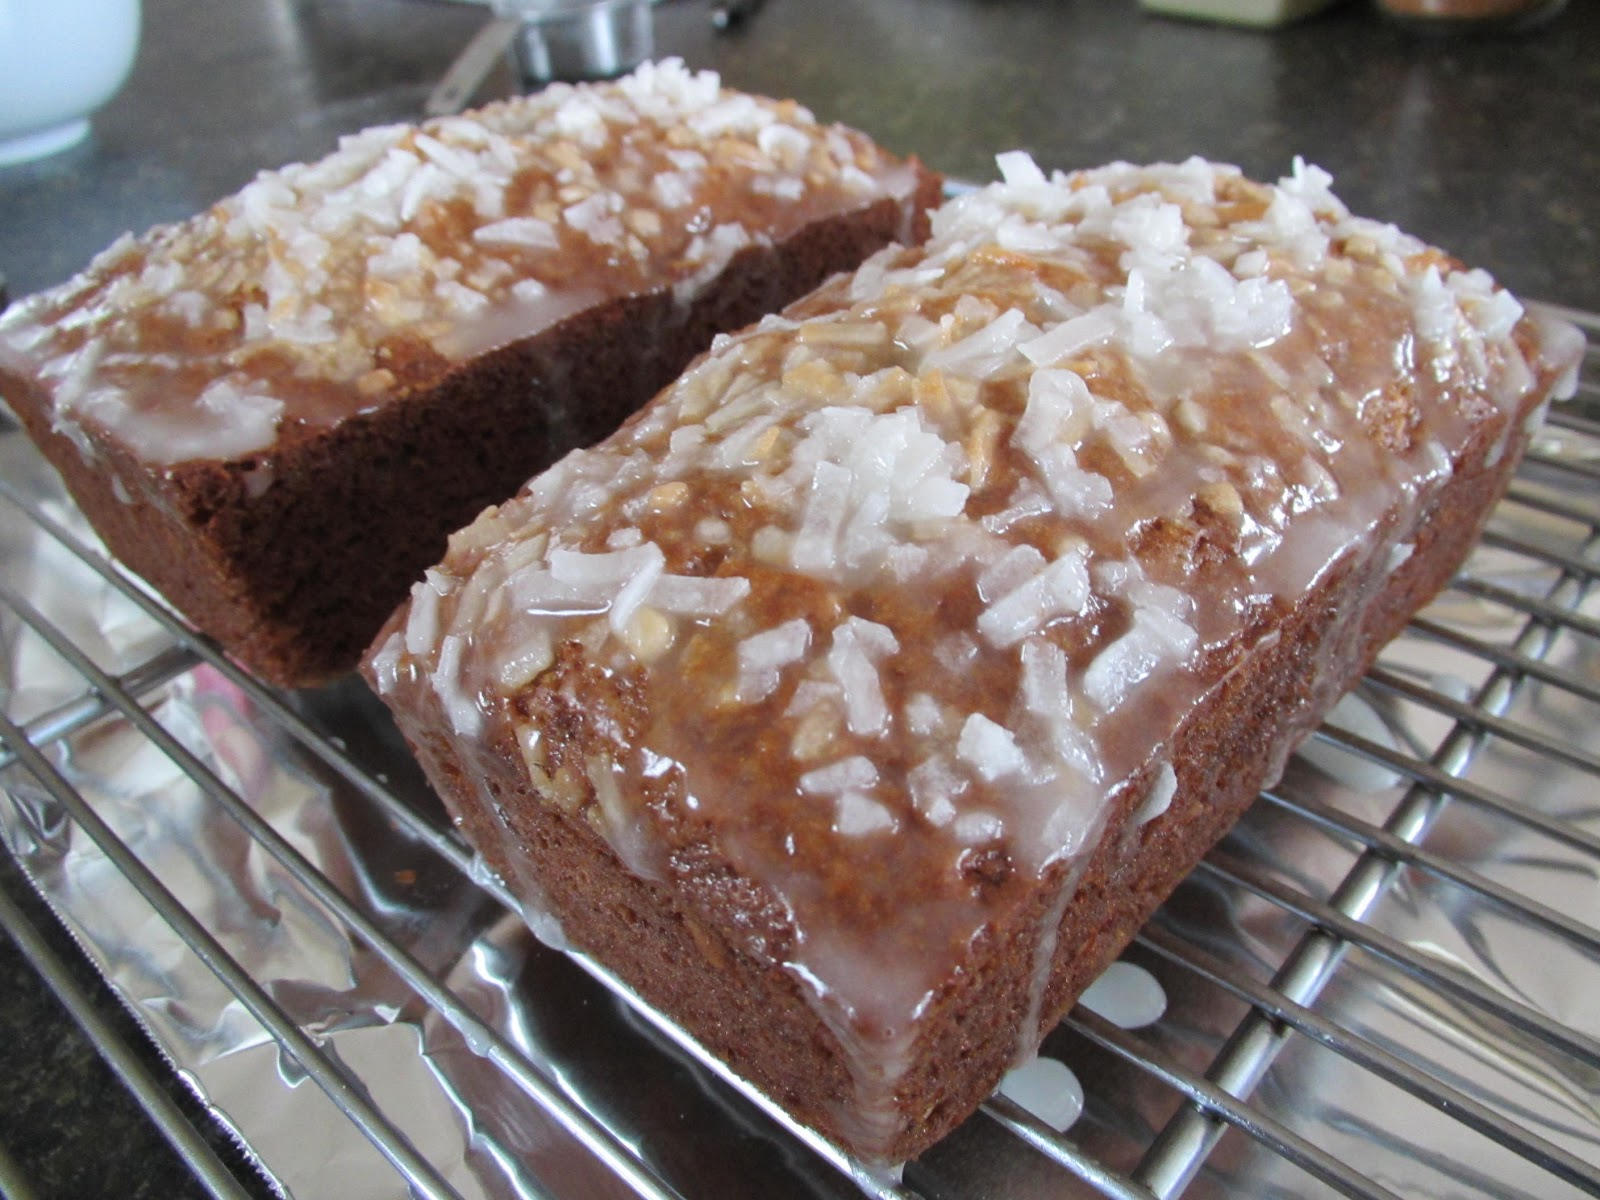 Successfully Gluten Free! : Coconut Banana Bread w/ Lemon Glaze